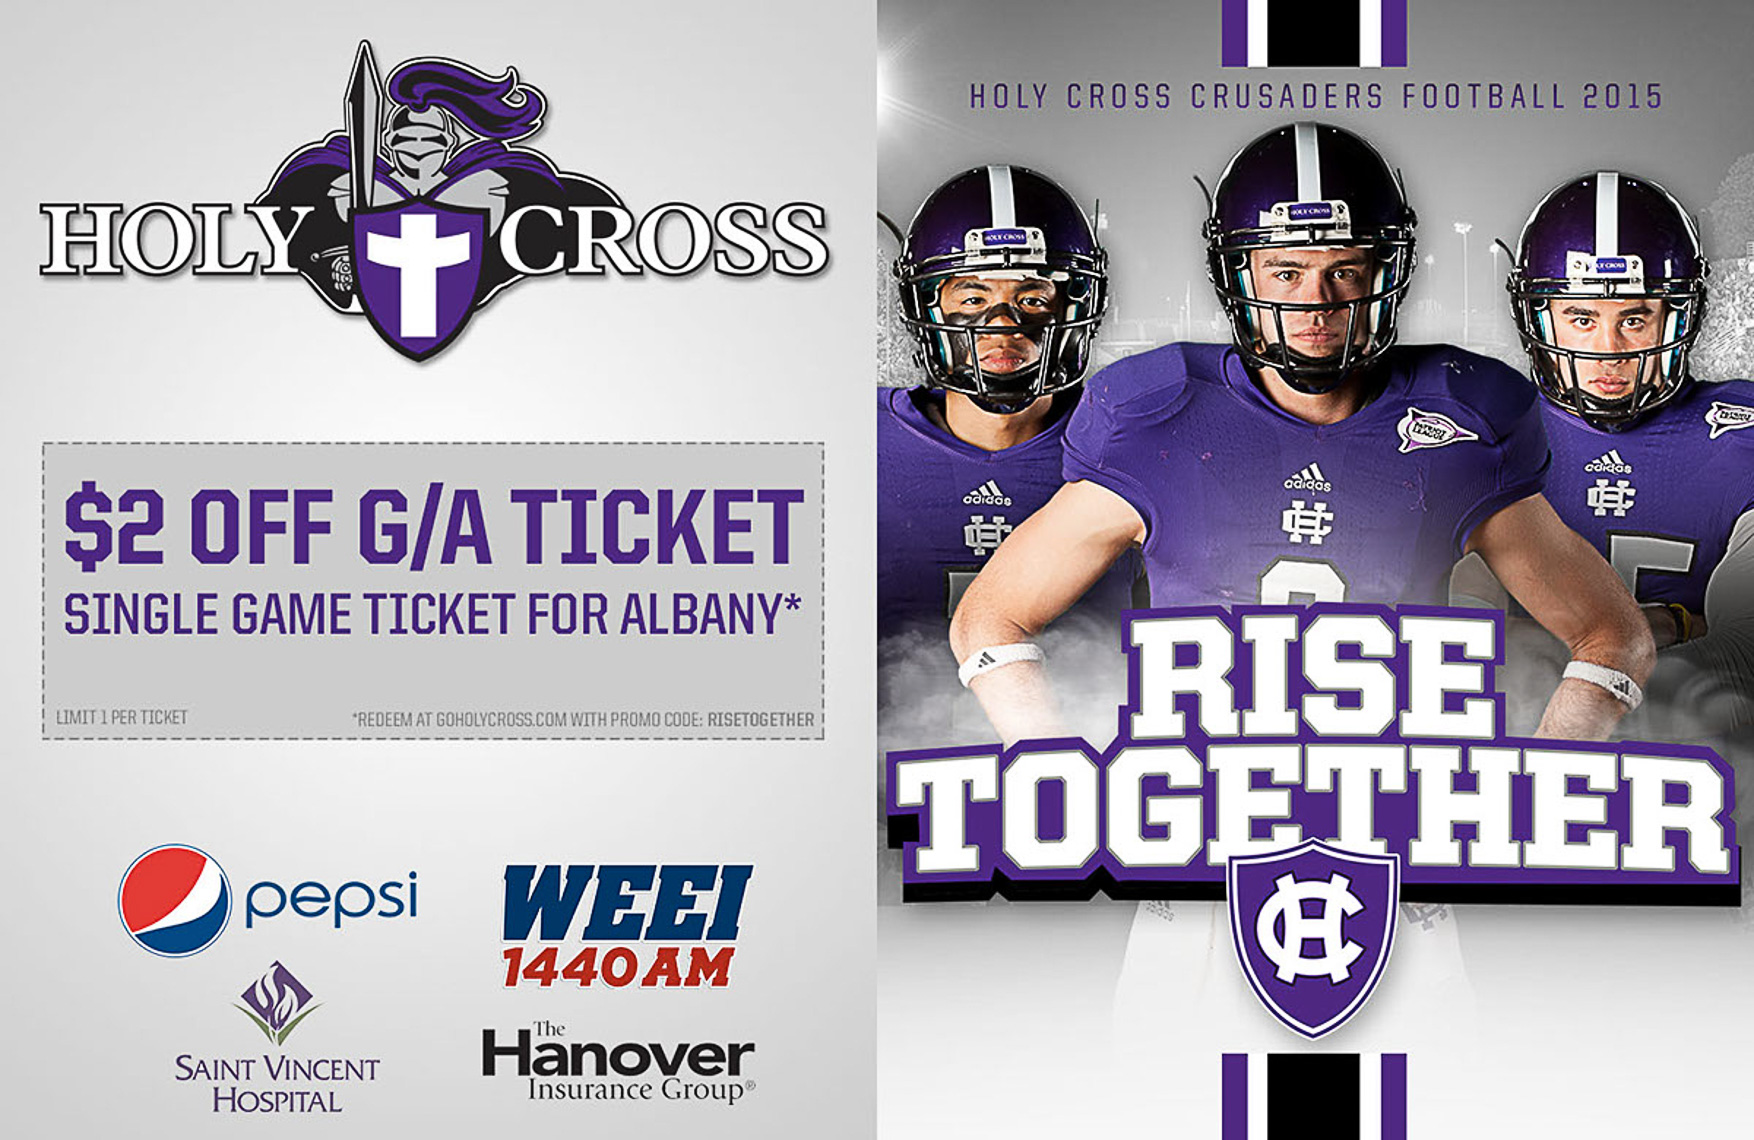 0013_0001_holy_cross_football_hartford_ct_sports_celebrity_corporate_sports_advertising_photographer_photojane